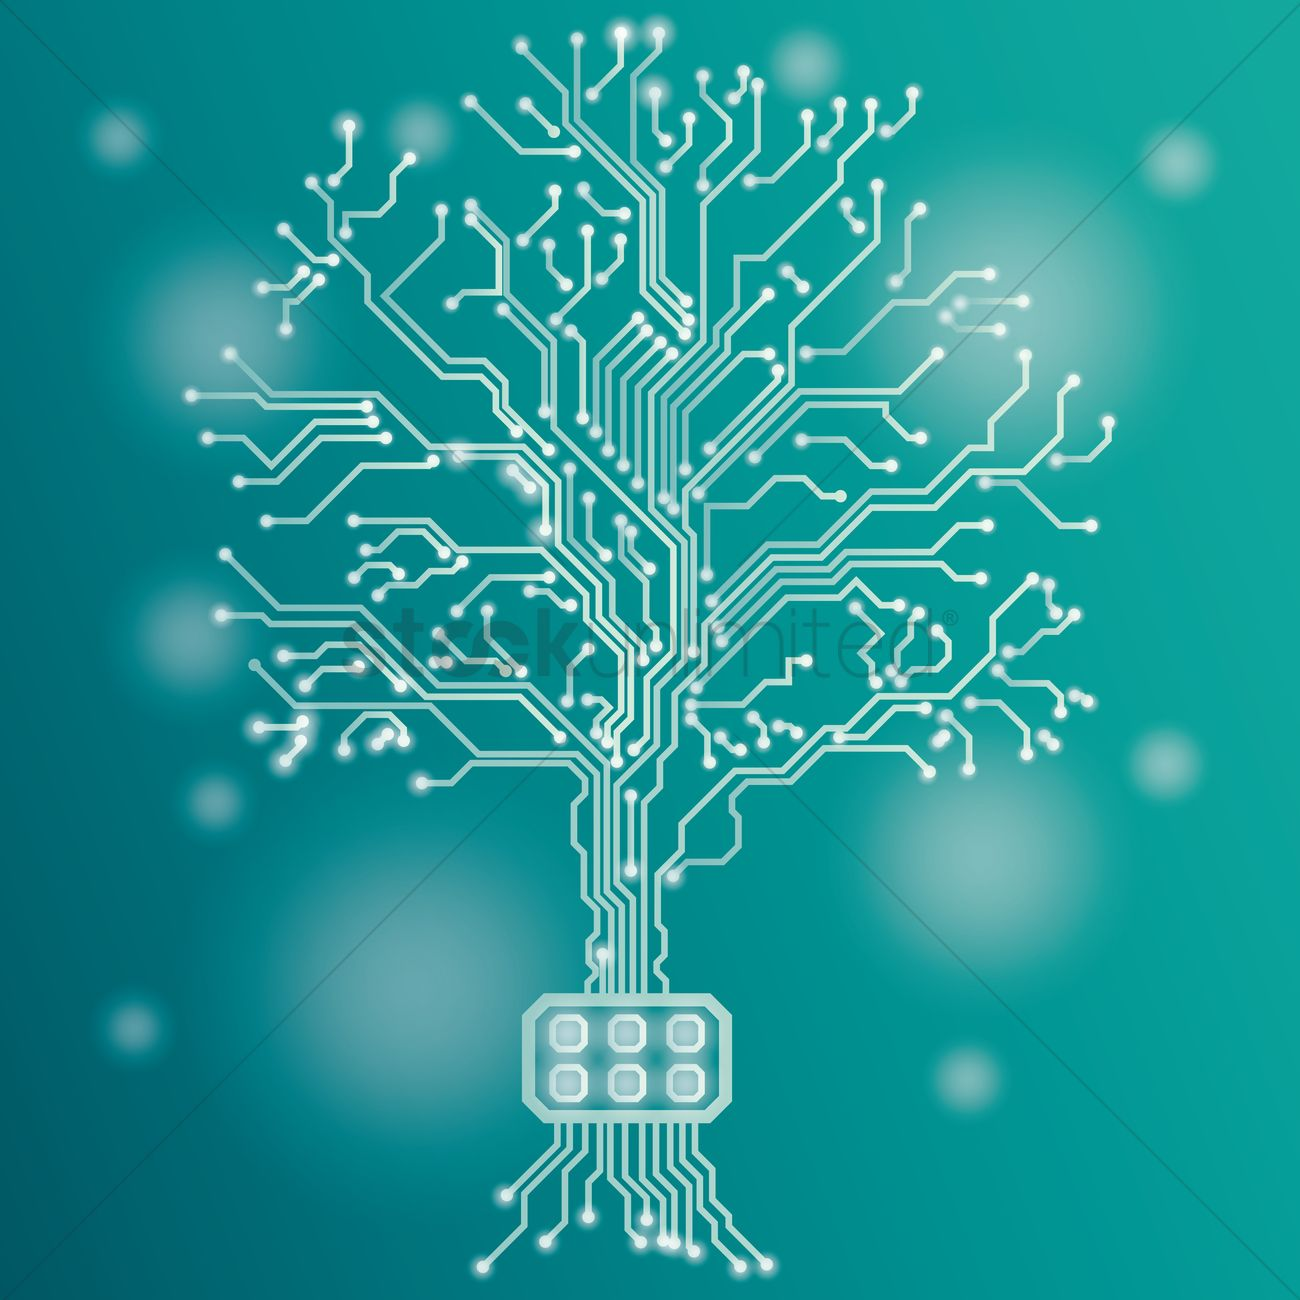 Circuit board tree design Vector Image - 1948519 | StockUnlimited